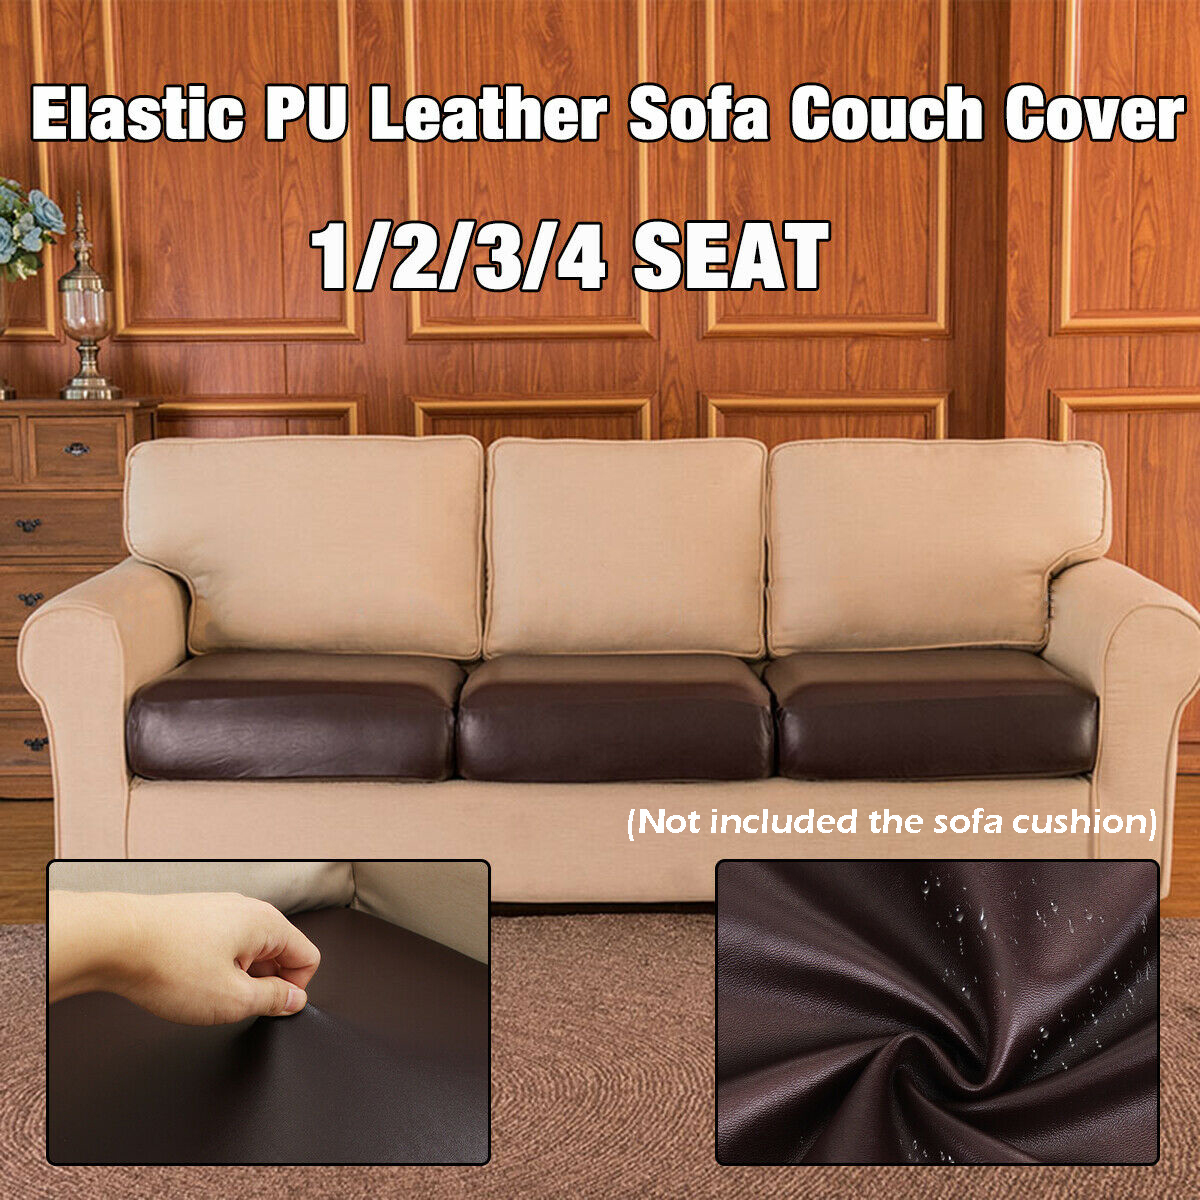 1 2 3 4 Seater Elastic Pu Leather